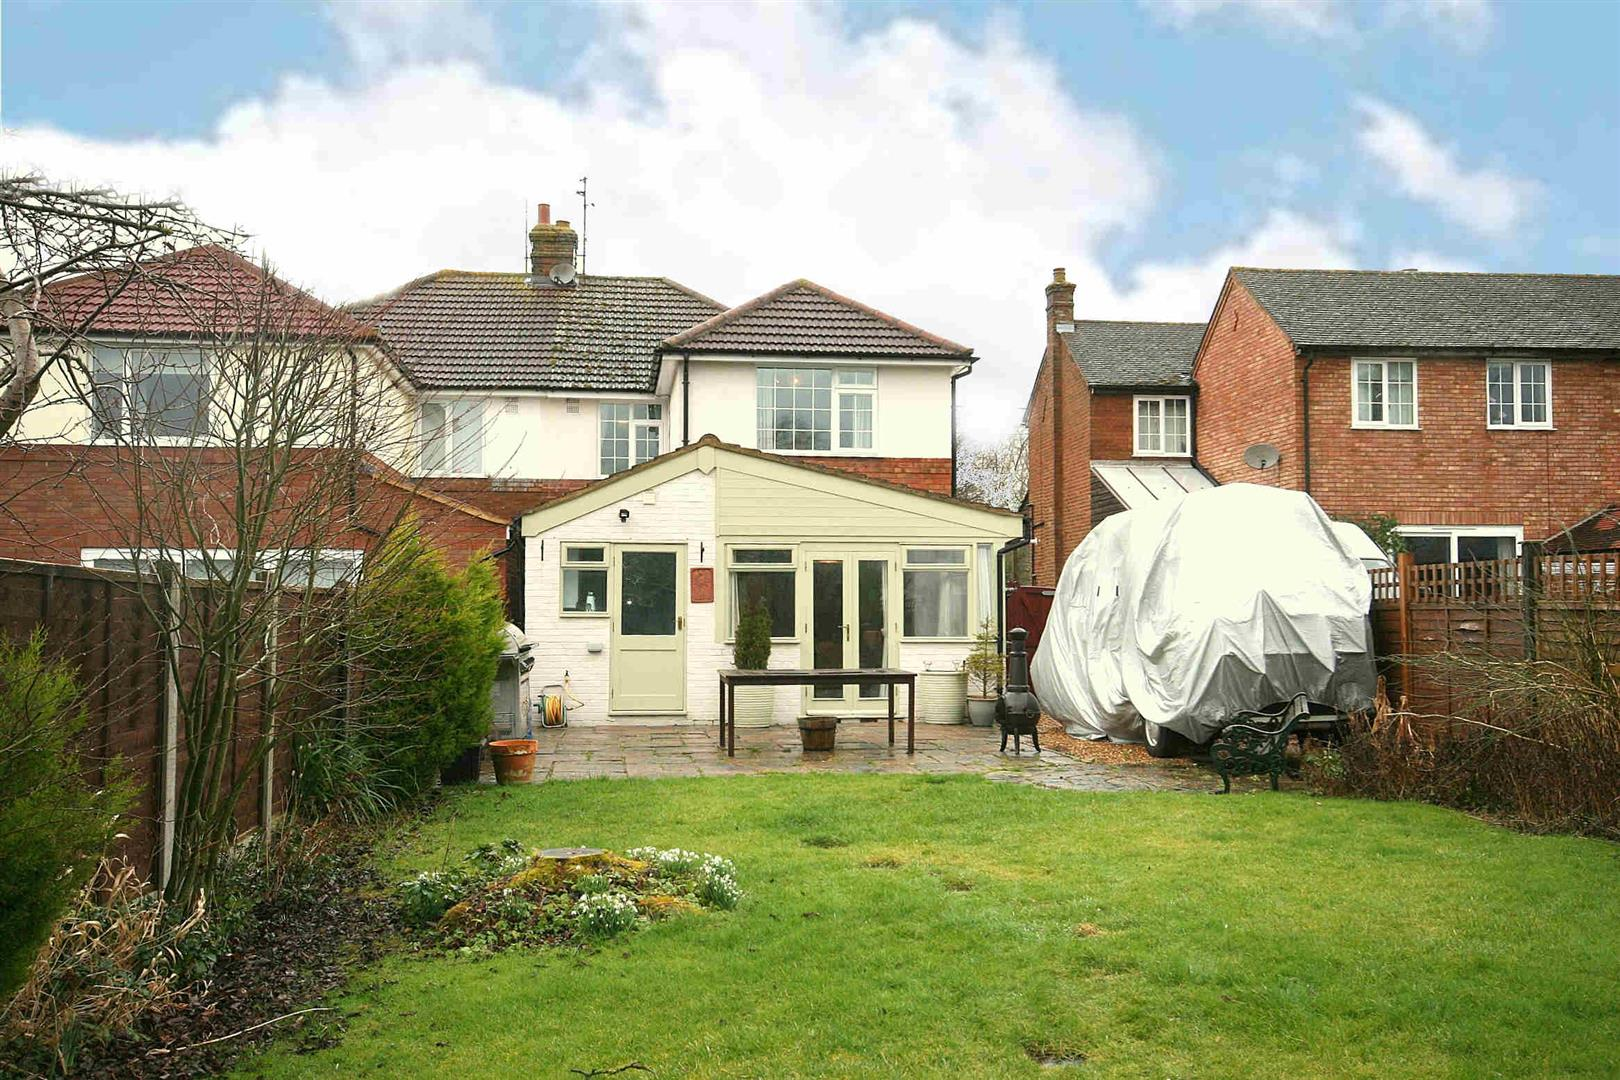 4 Bedrooms Semi Detached House for sale in School Lane, Eaton Bray, Beds.